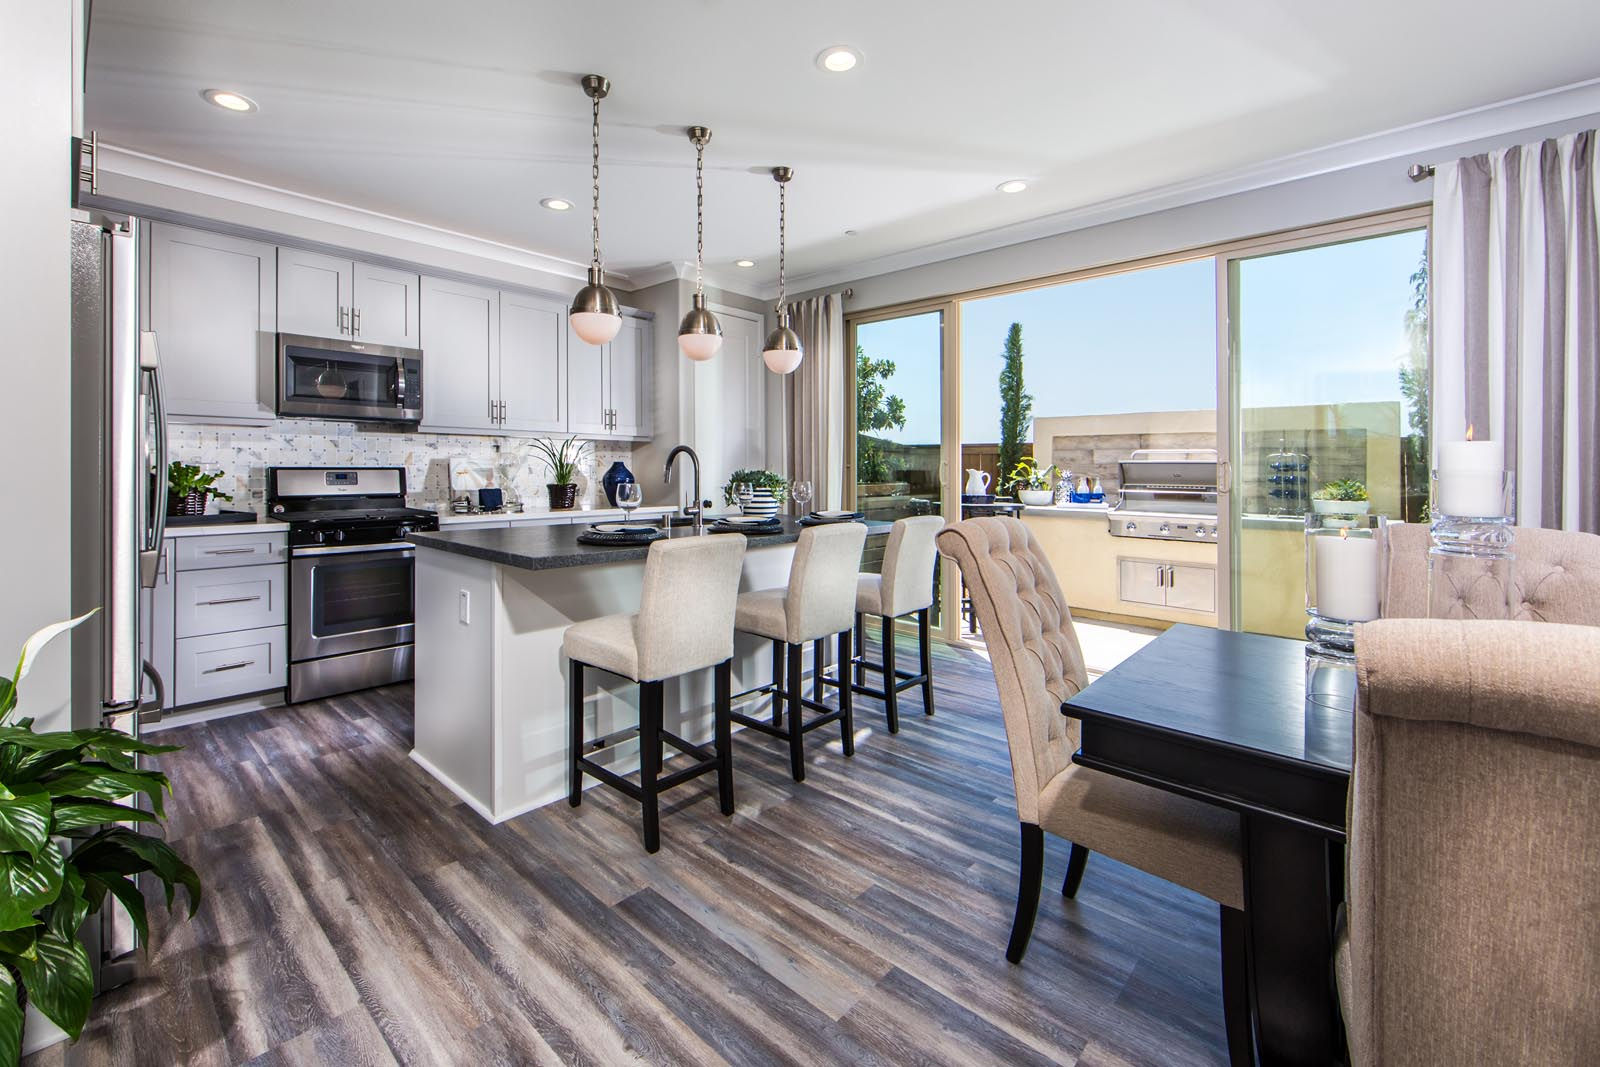 Residence 2 Kitchen | Prado at the Village of Escaya in Chula Vista, CA | Brookfield Residential